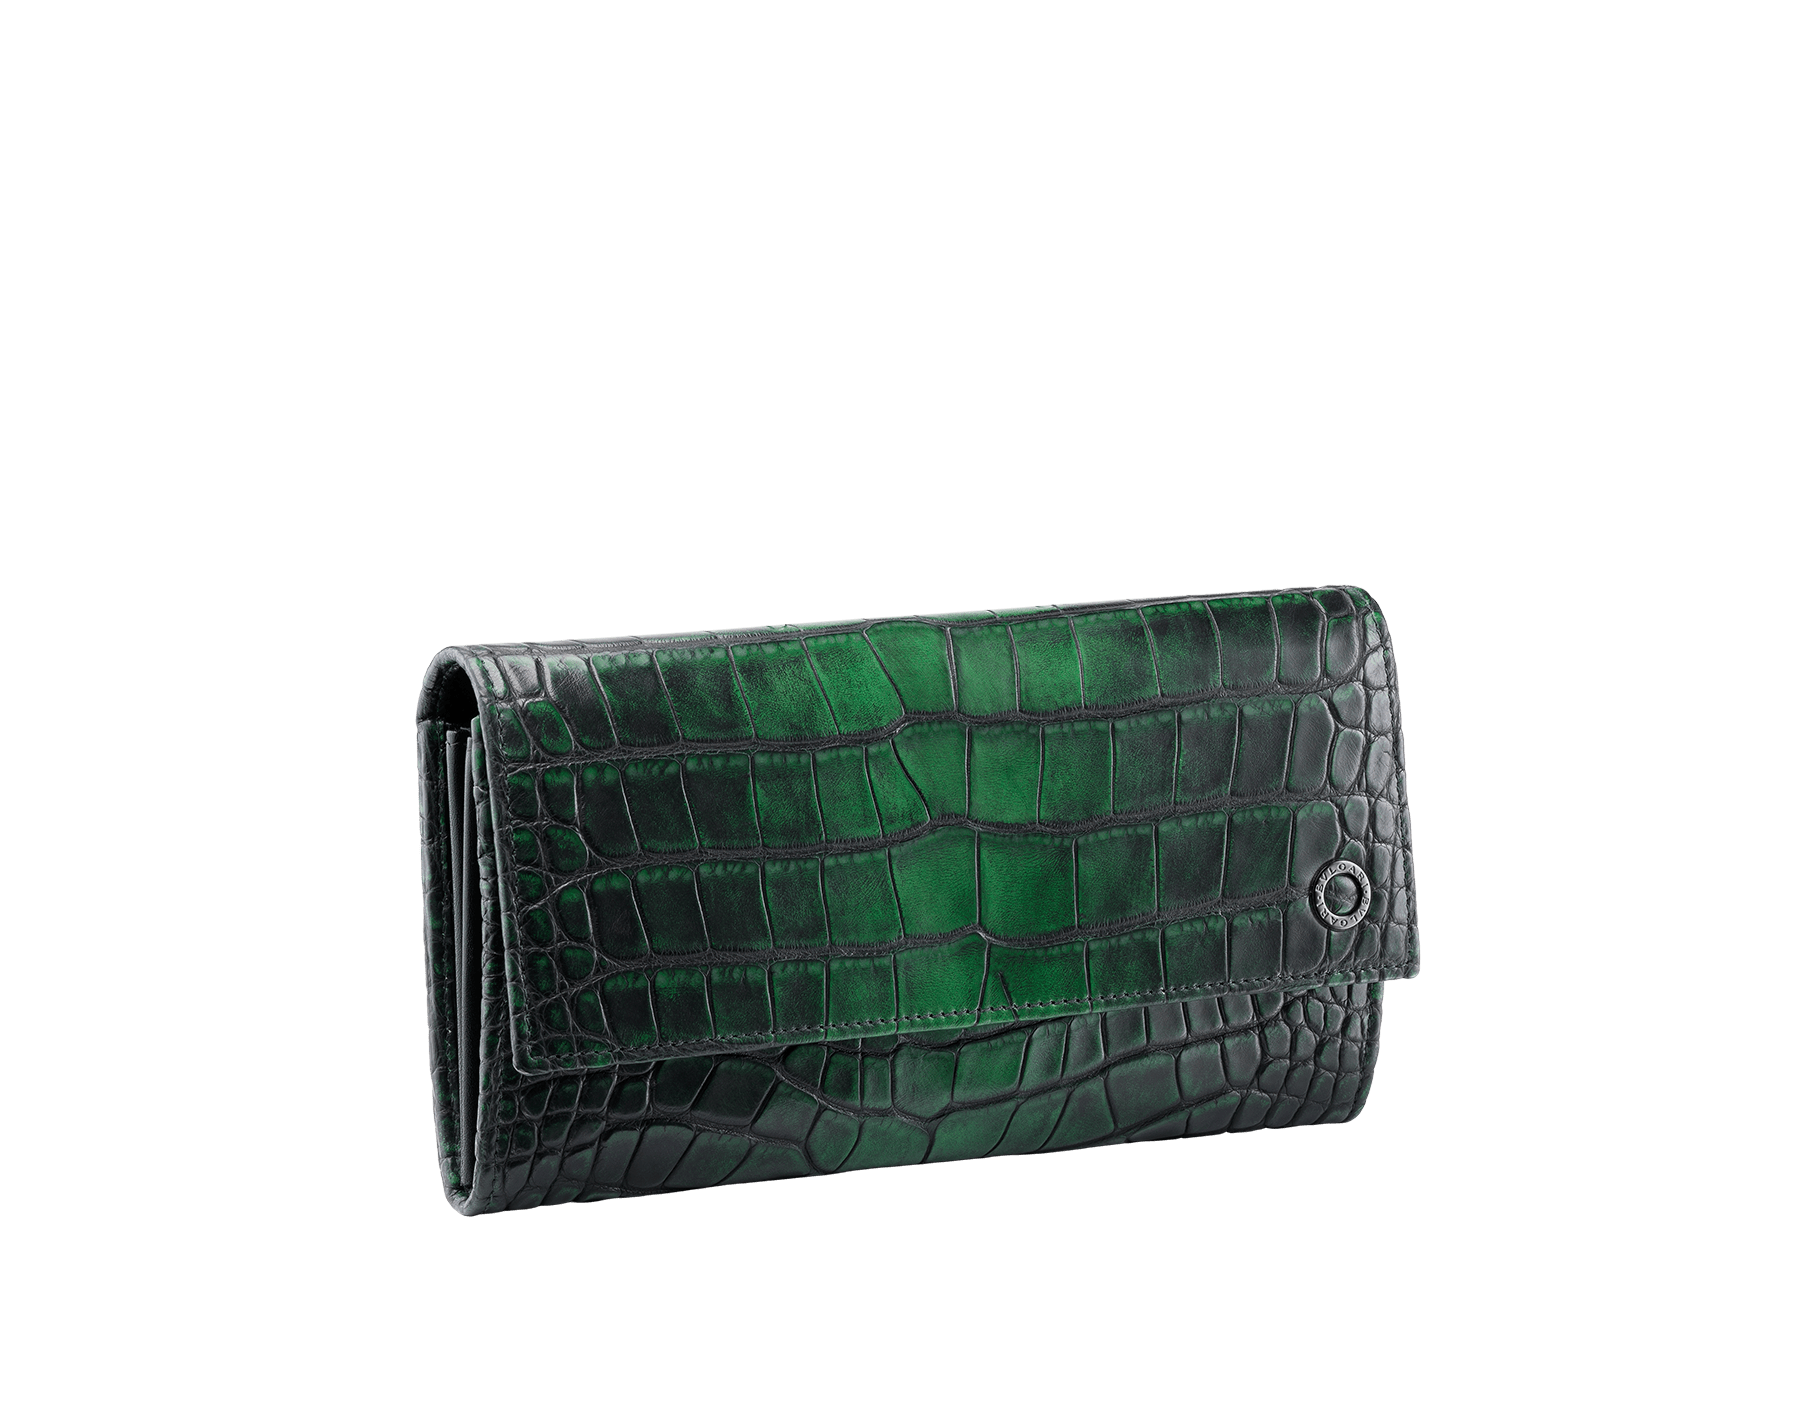 Man wallet pochette in Jungle green alligator skin and black smooth calf leather, with brass dark ruthenium plated hardware featuring the Bulgari-Bulgari motif. 38622 image 1